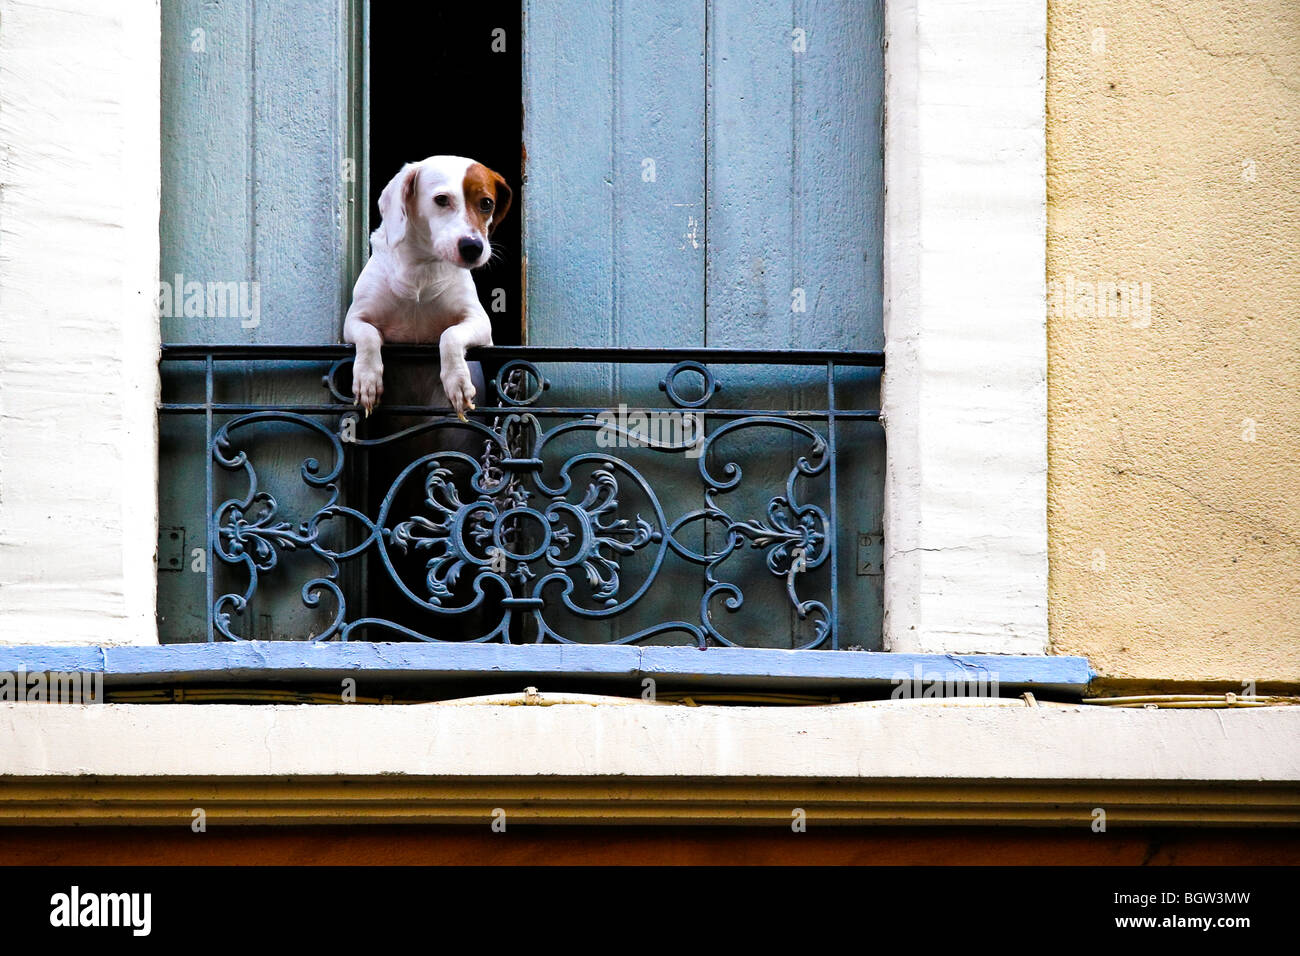 A cute French dog leans out of open shutters Stock Photo